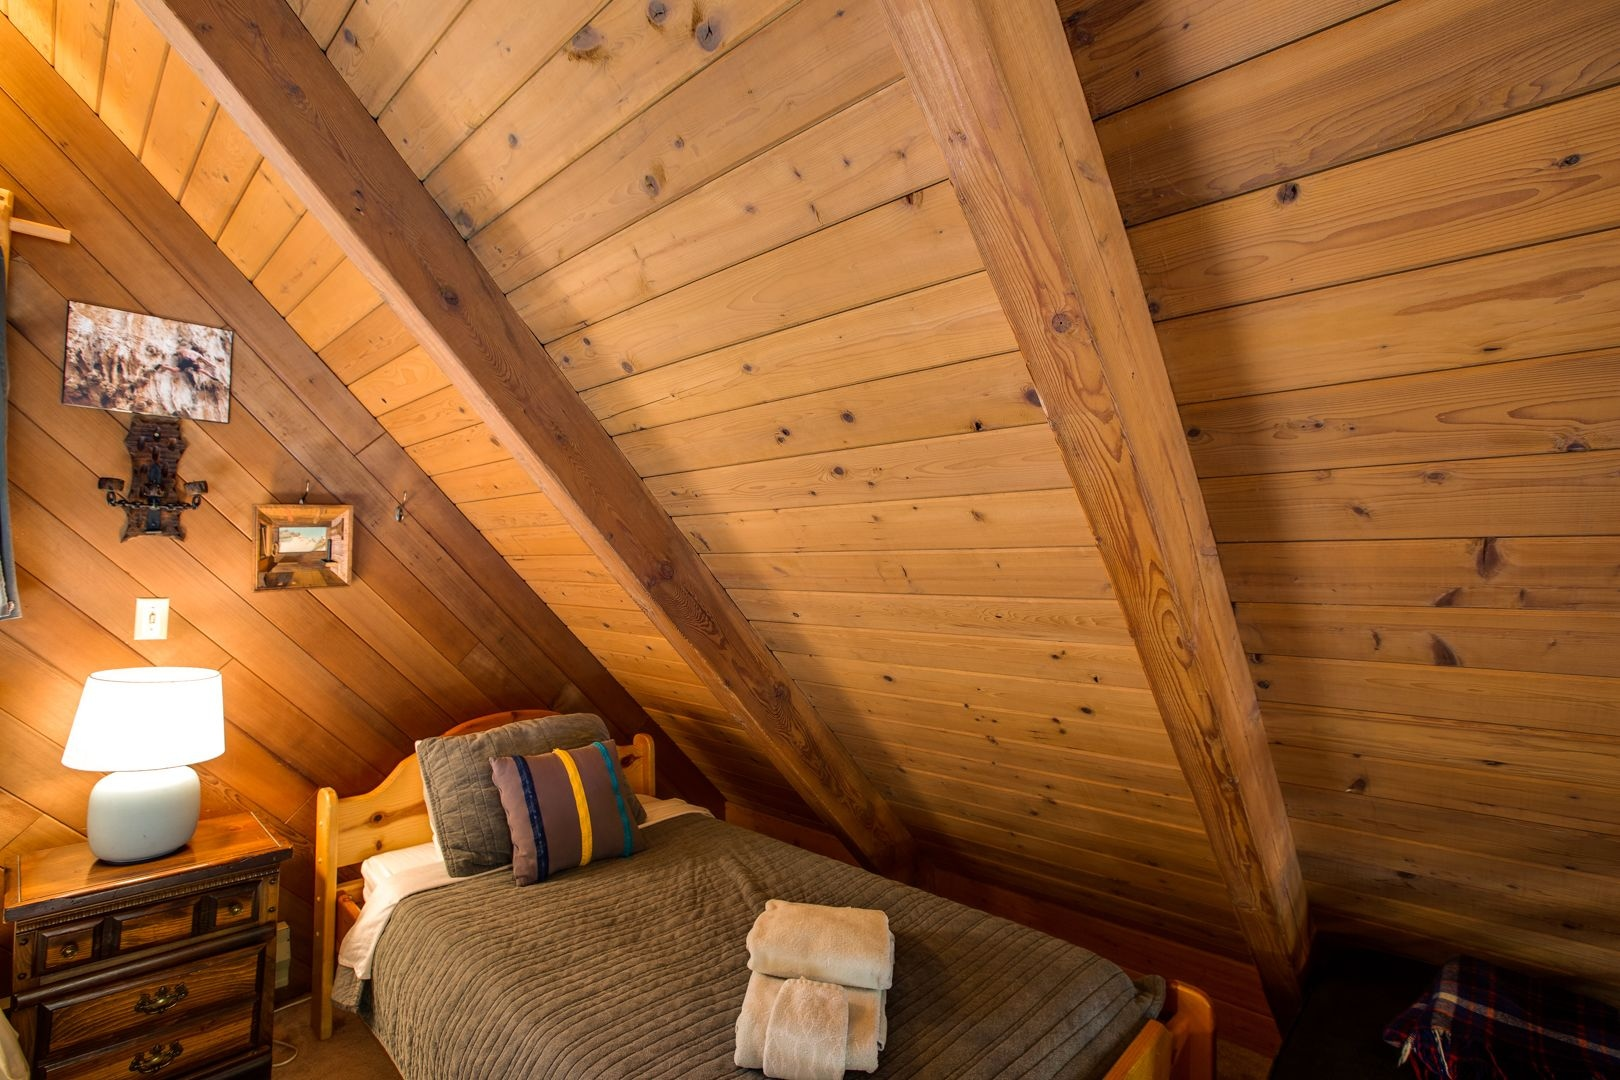 Mt. Baker Lodging Cabin 53 – Hot Tub, WiFi, Sleeps 6! by MBL, Whatcom